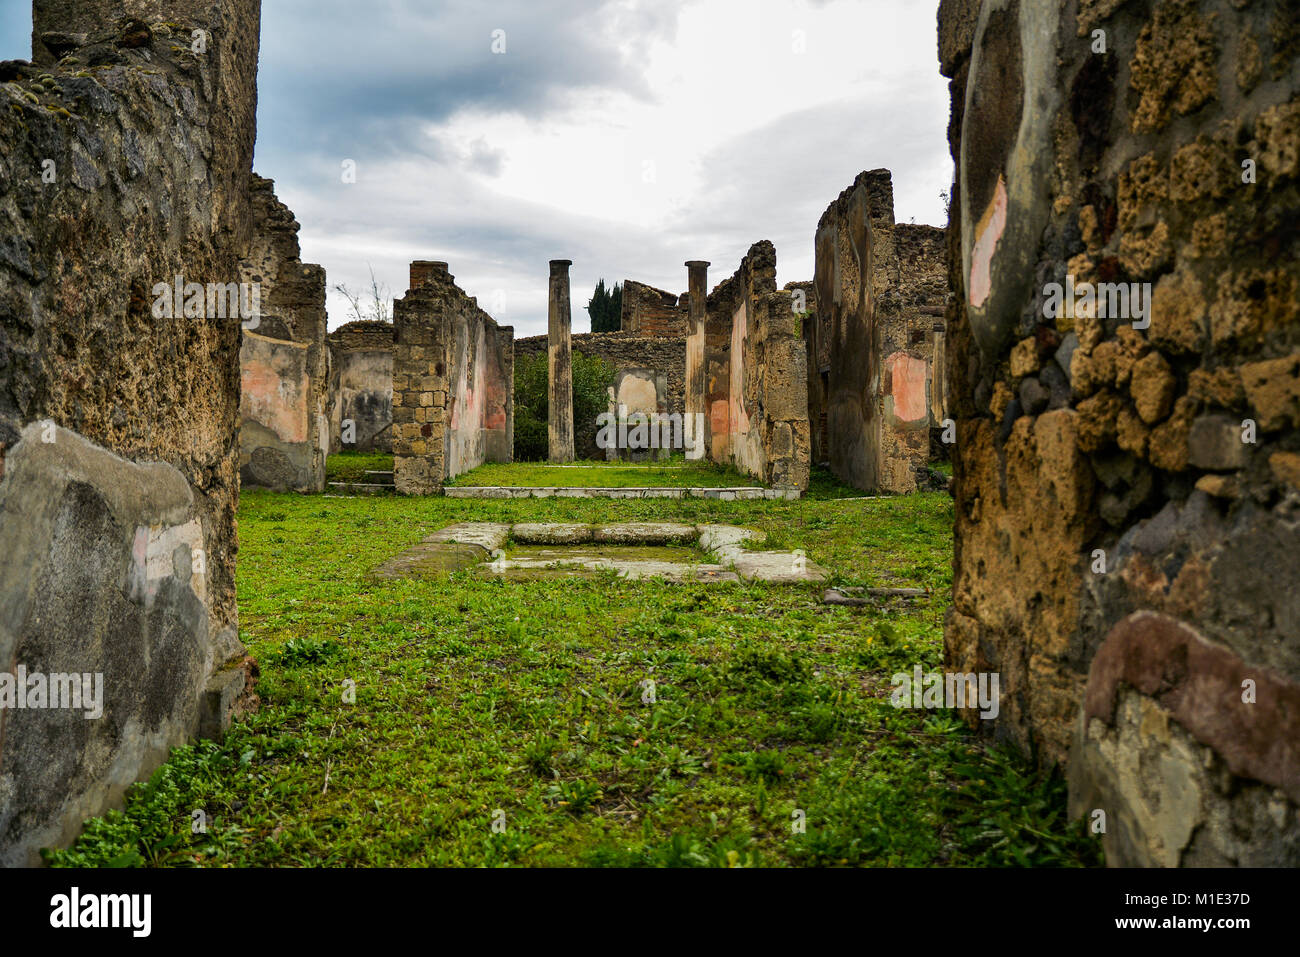 Ruins of ancient city of Pompeii, destroyed by volcano Mount Vesuvius, two millenniums ago, 79 AD. open for visitors, - Stock Image